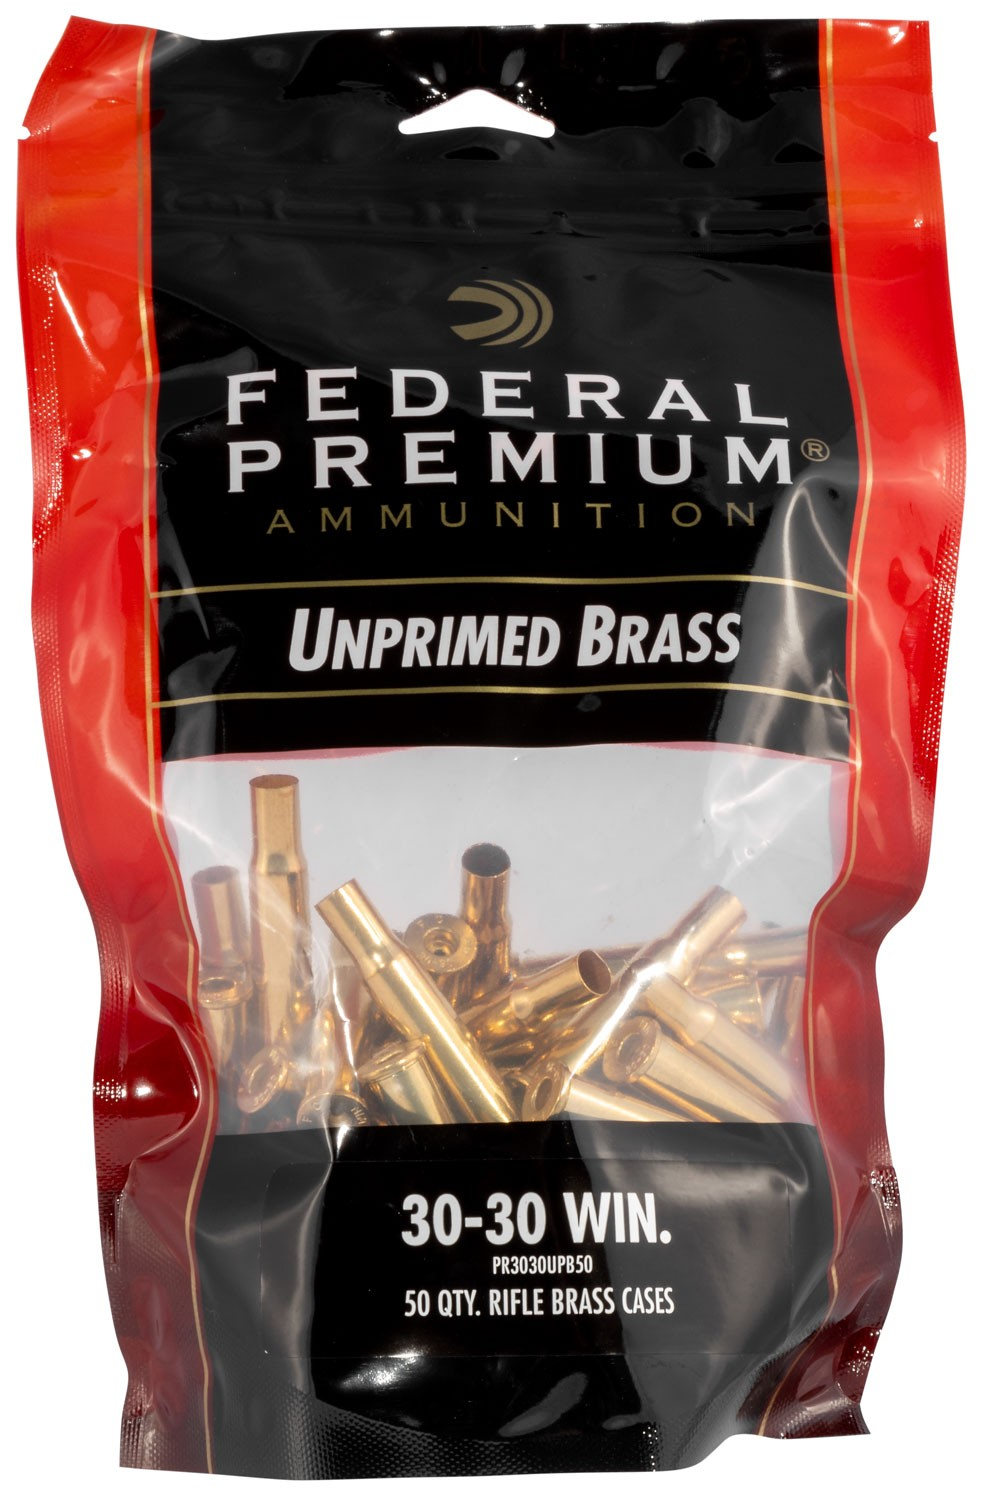 Federal PR3030UPB50 Gold Medal Rifle 30-30 Winchester Brass 50